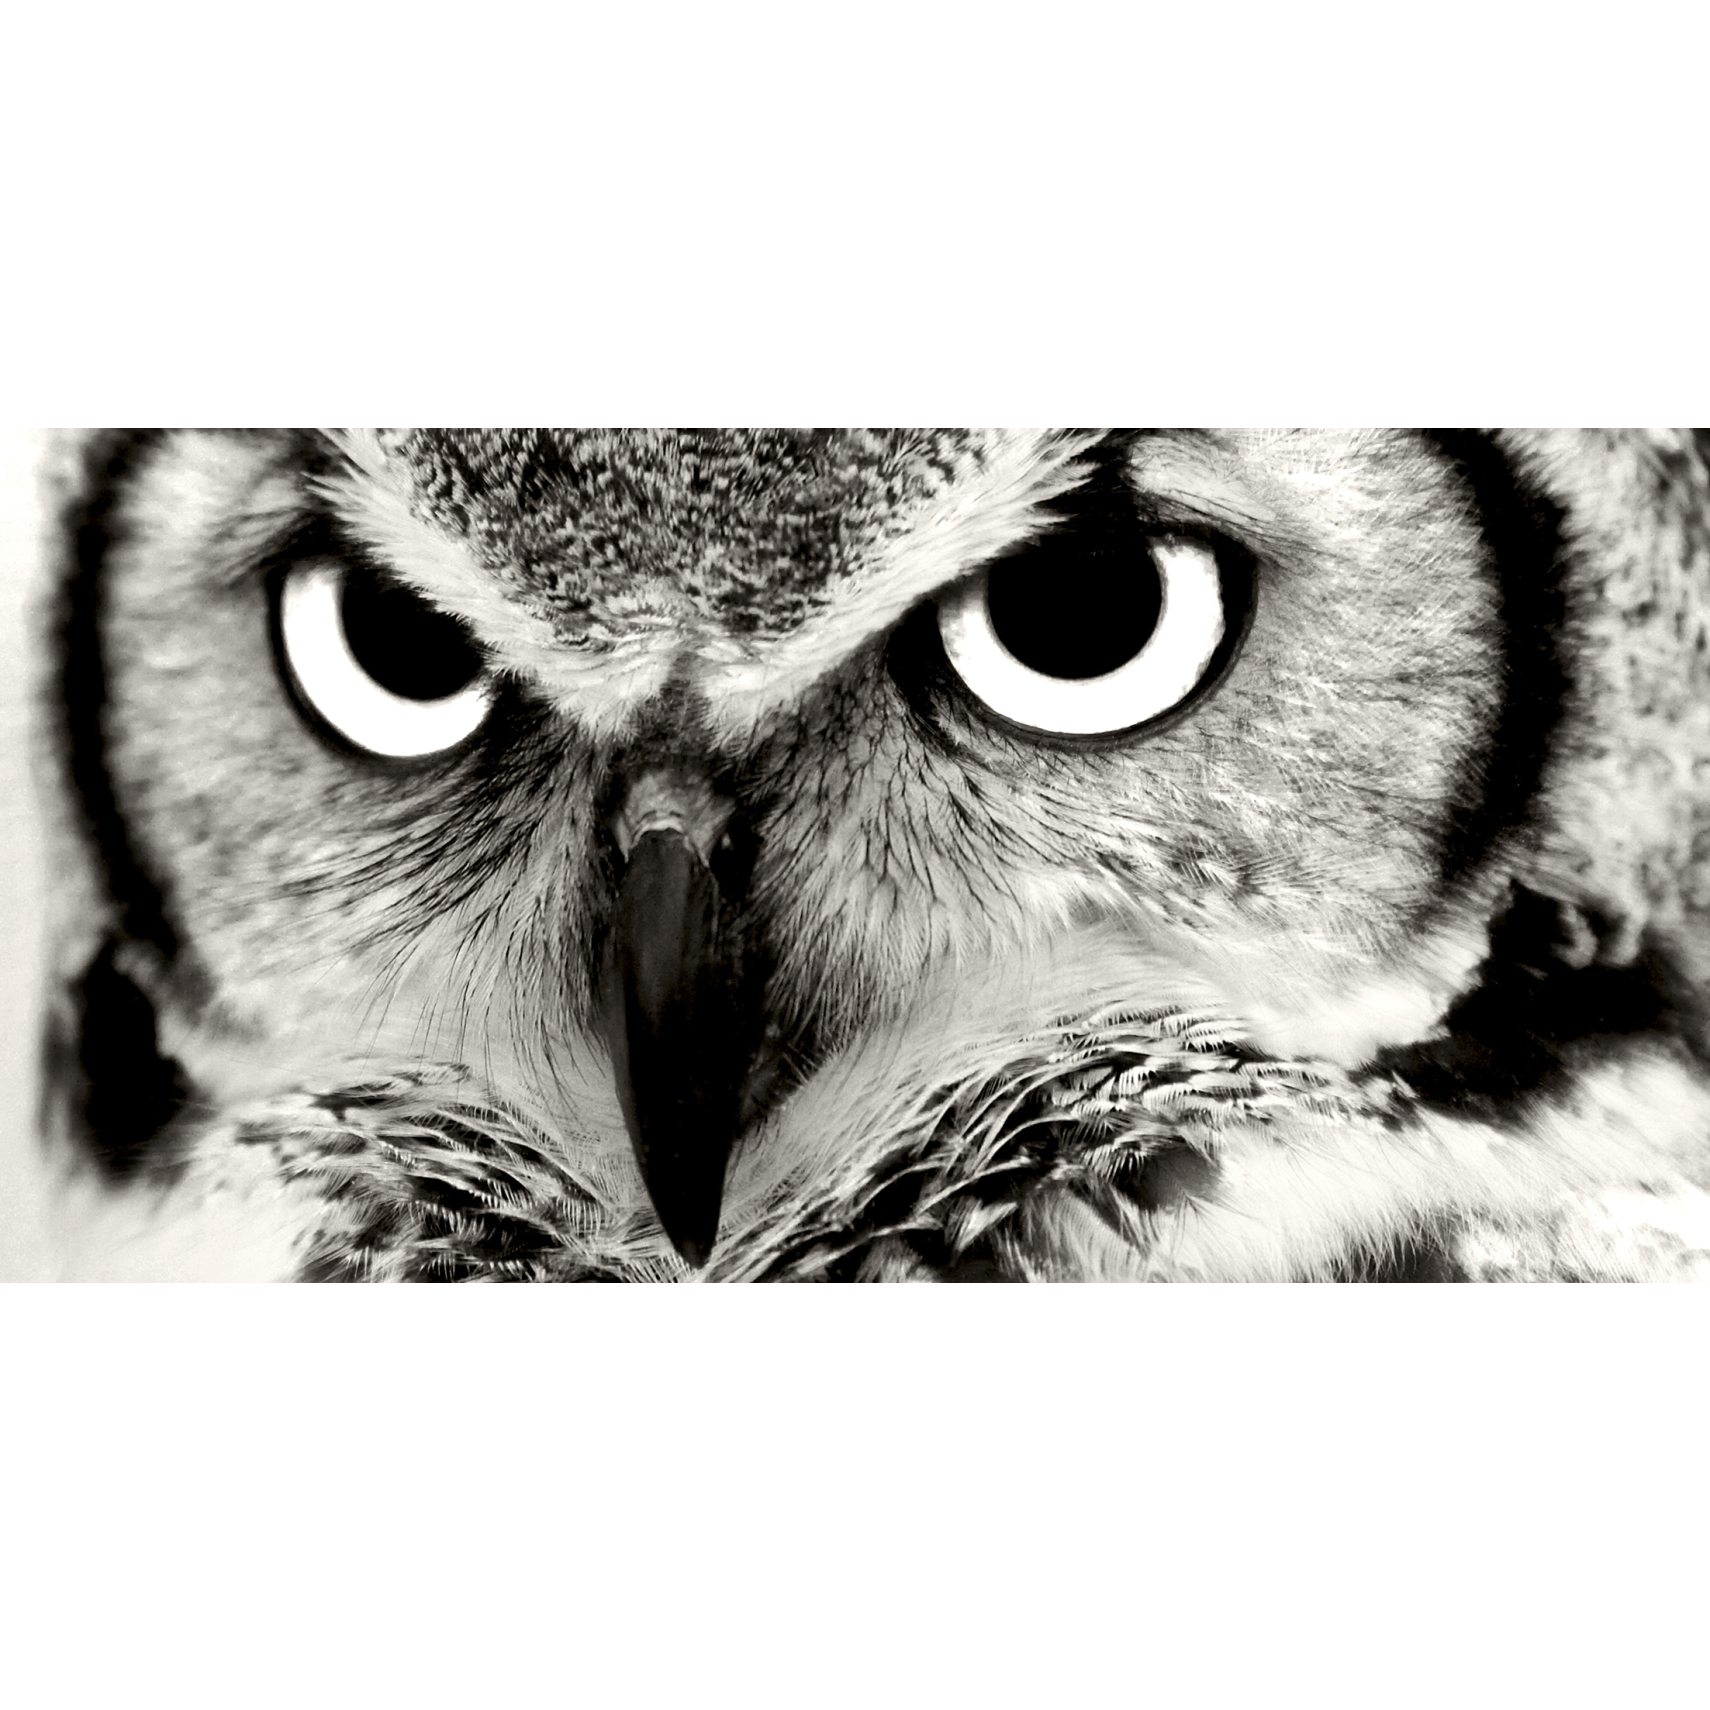 PhotoInc Fotoprint - Owl og blind ramme